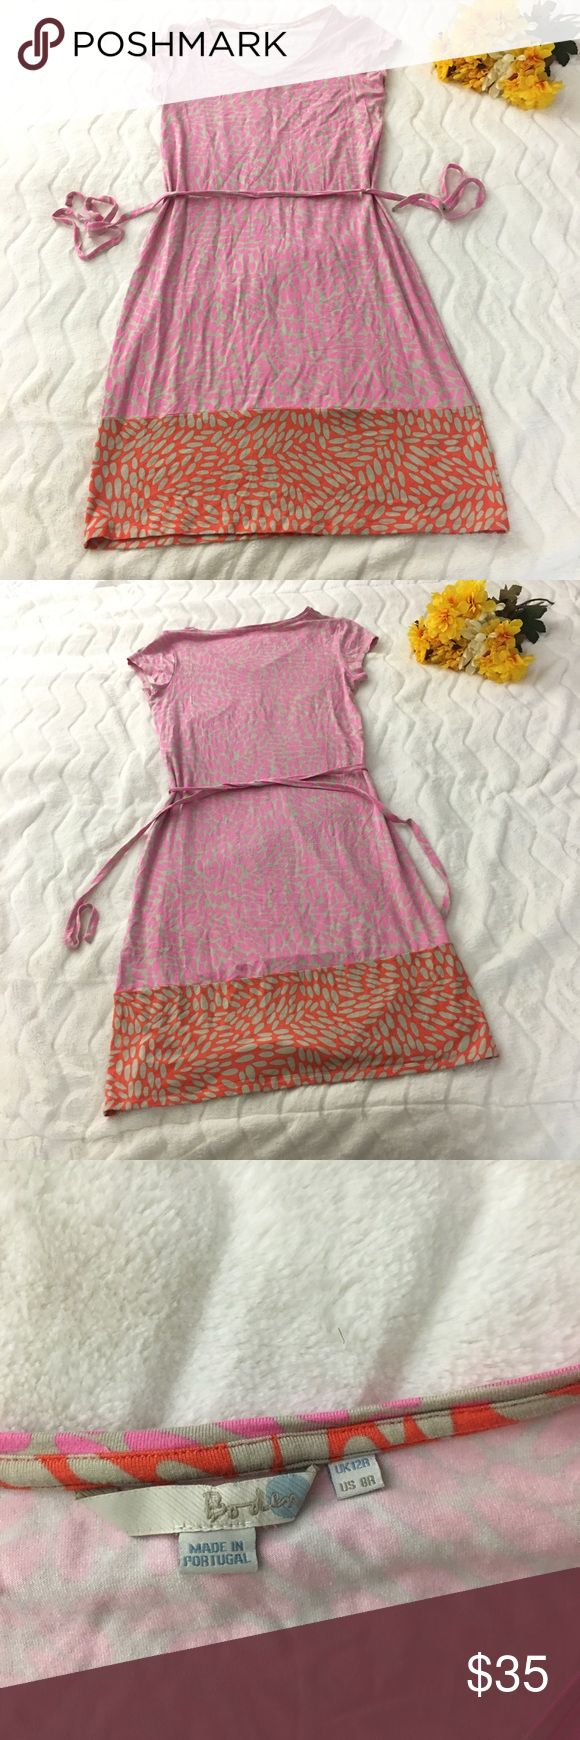 Boden Dress Gently used. Small hole near tag shown in photo. Pulling to the but area on back of dress, shown in photo. Boden Dresses